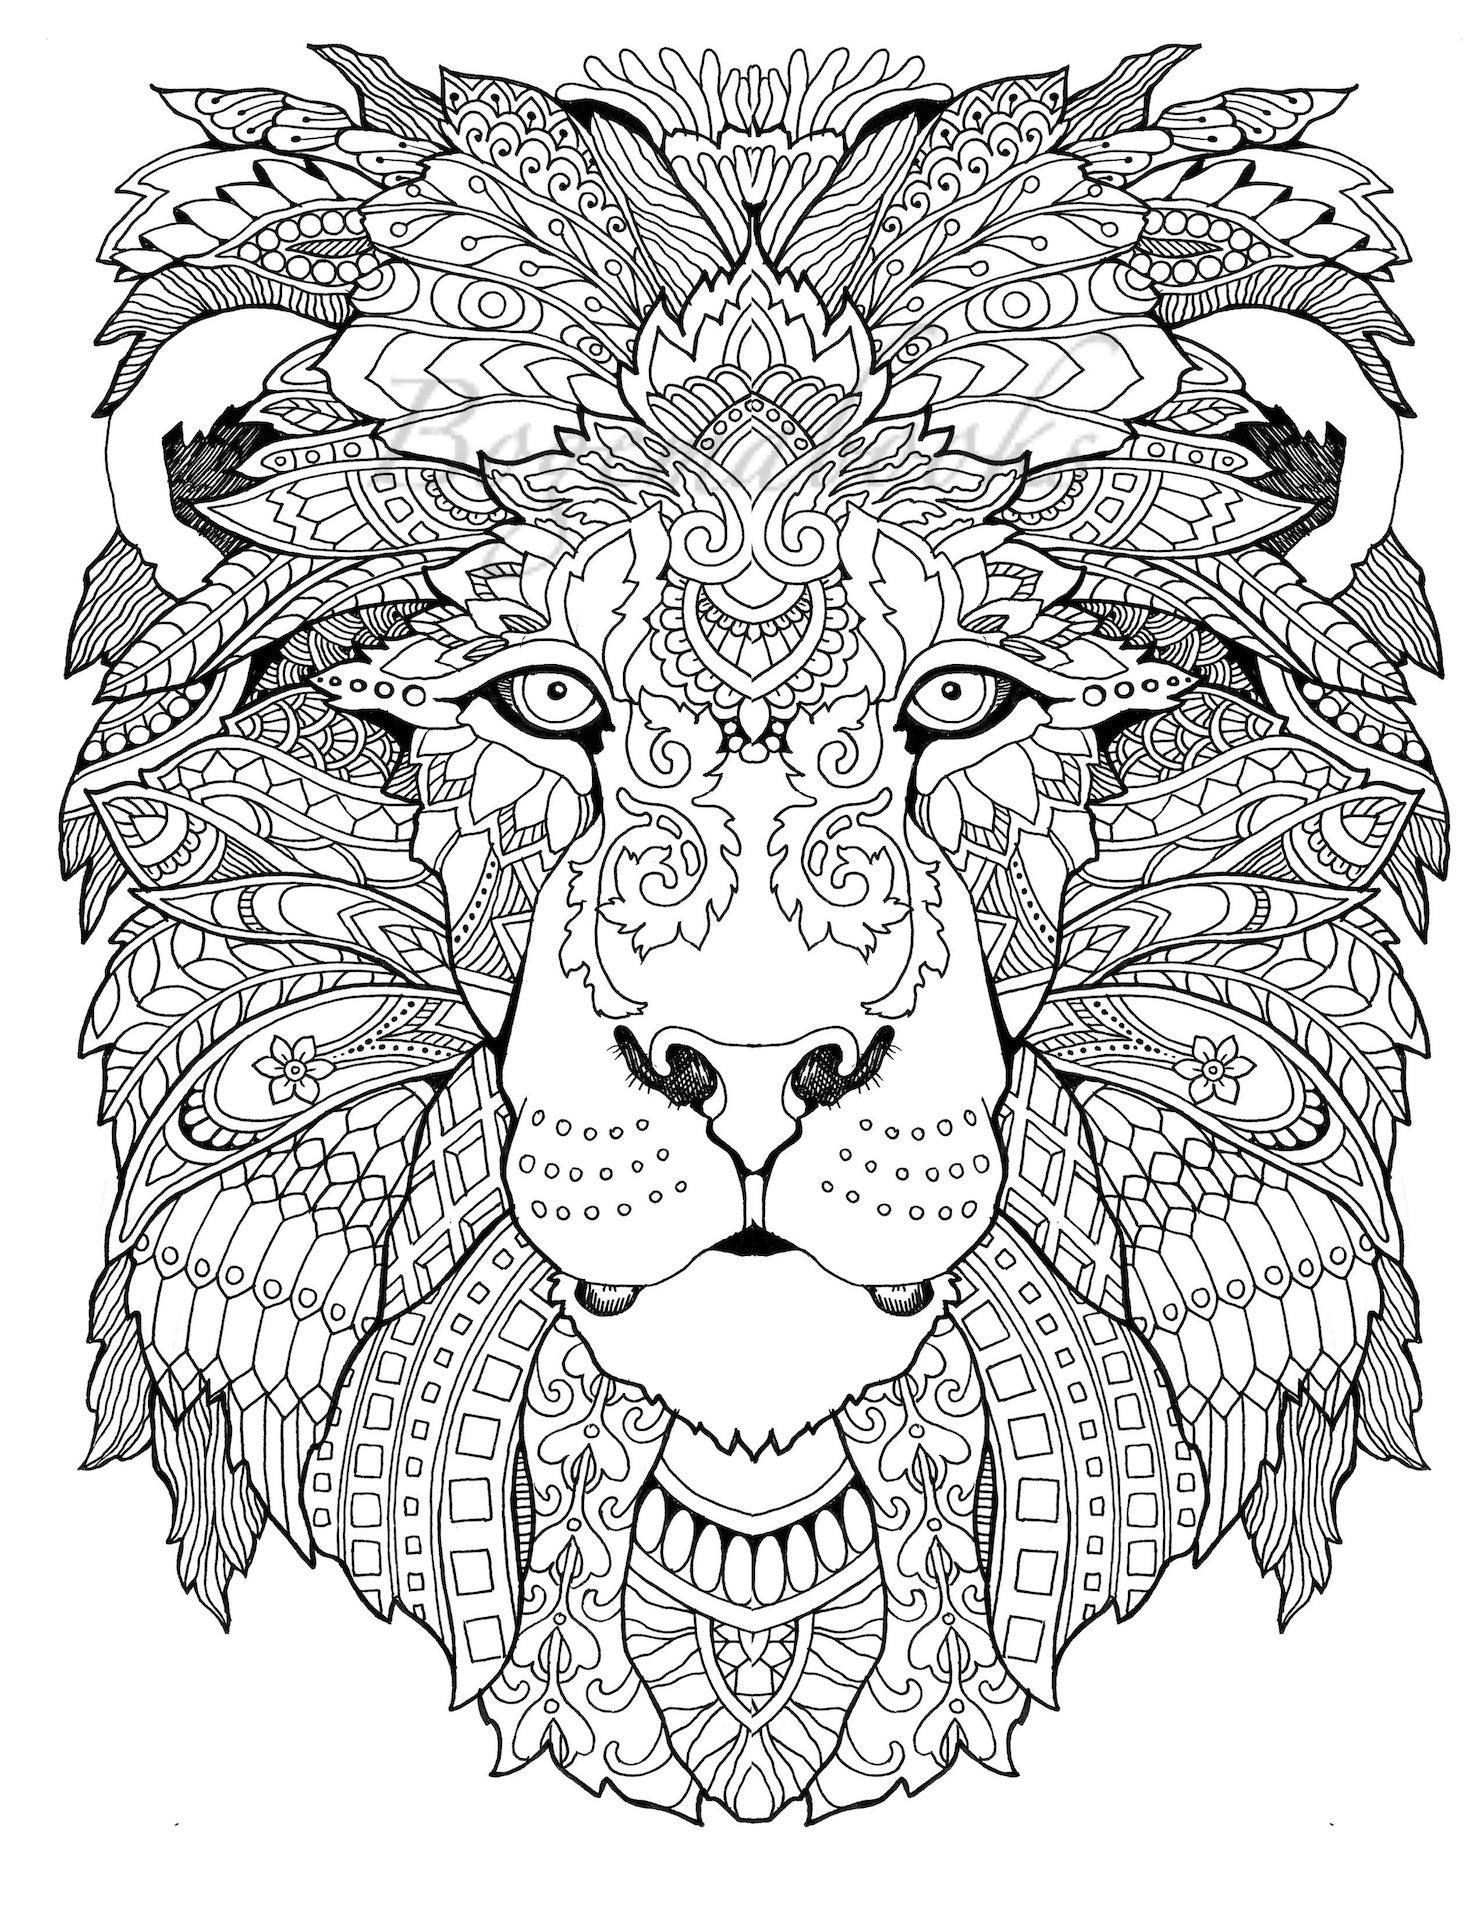 - Mindfulness Colouring Lion - Google Search (With Images) Lion